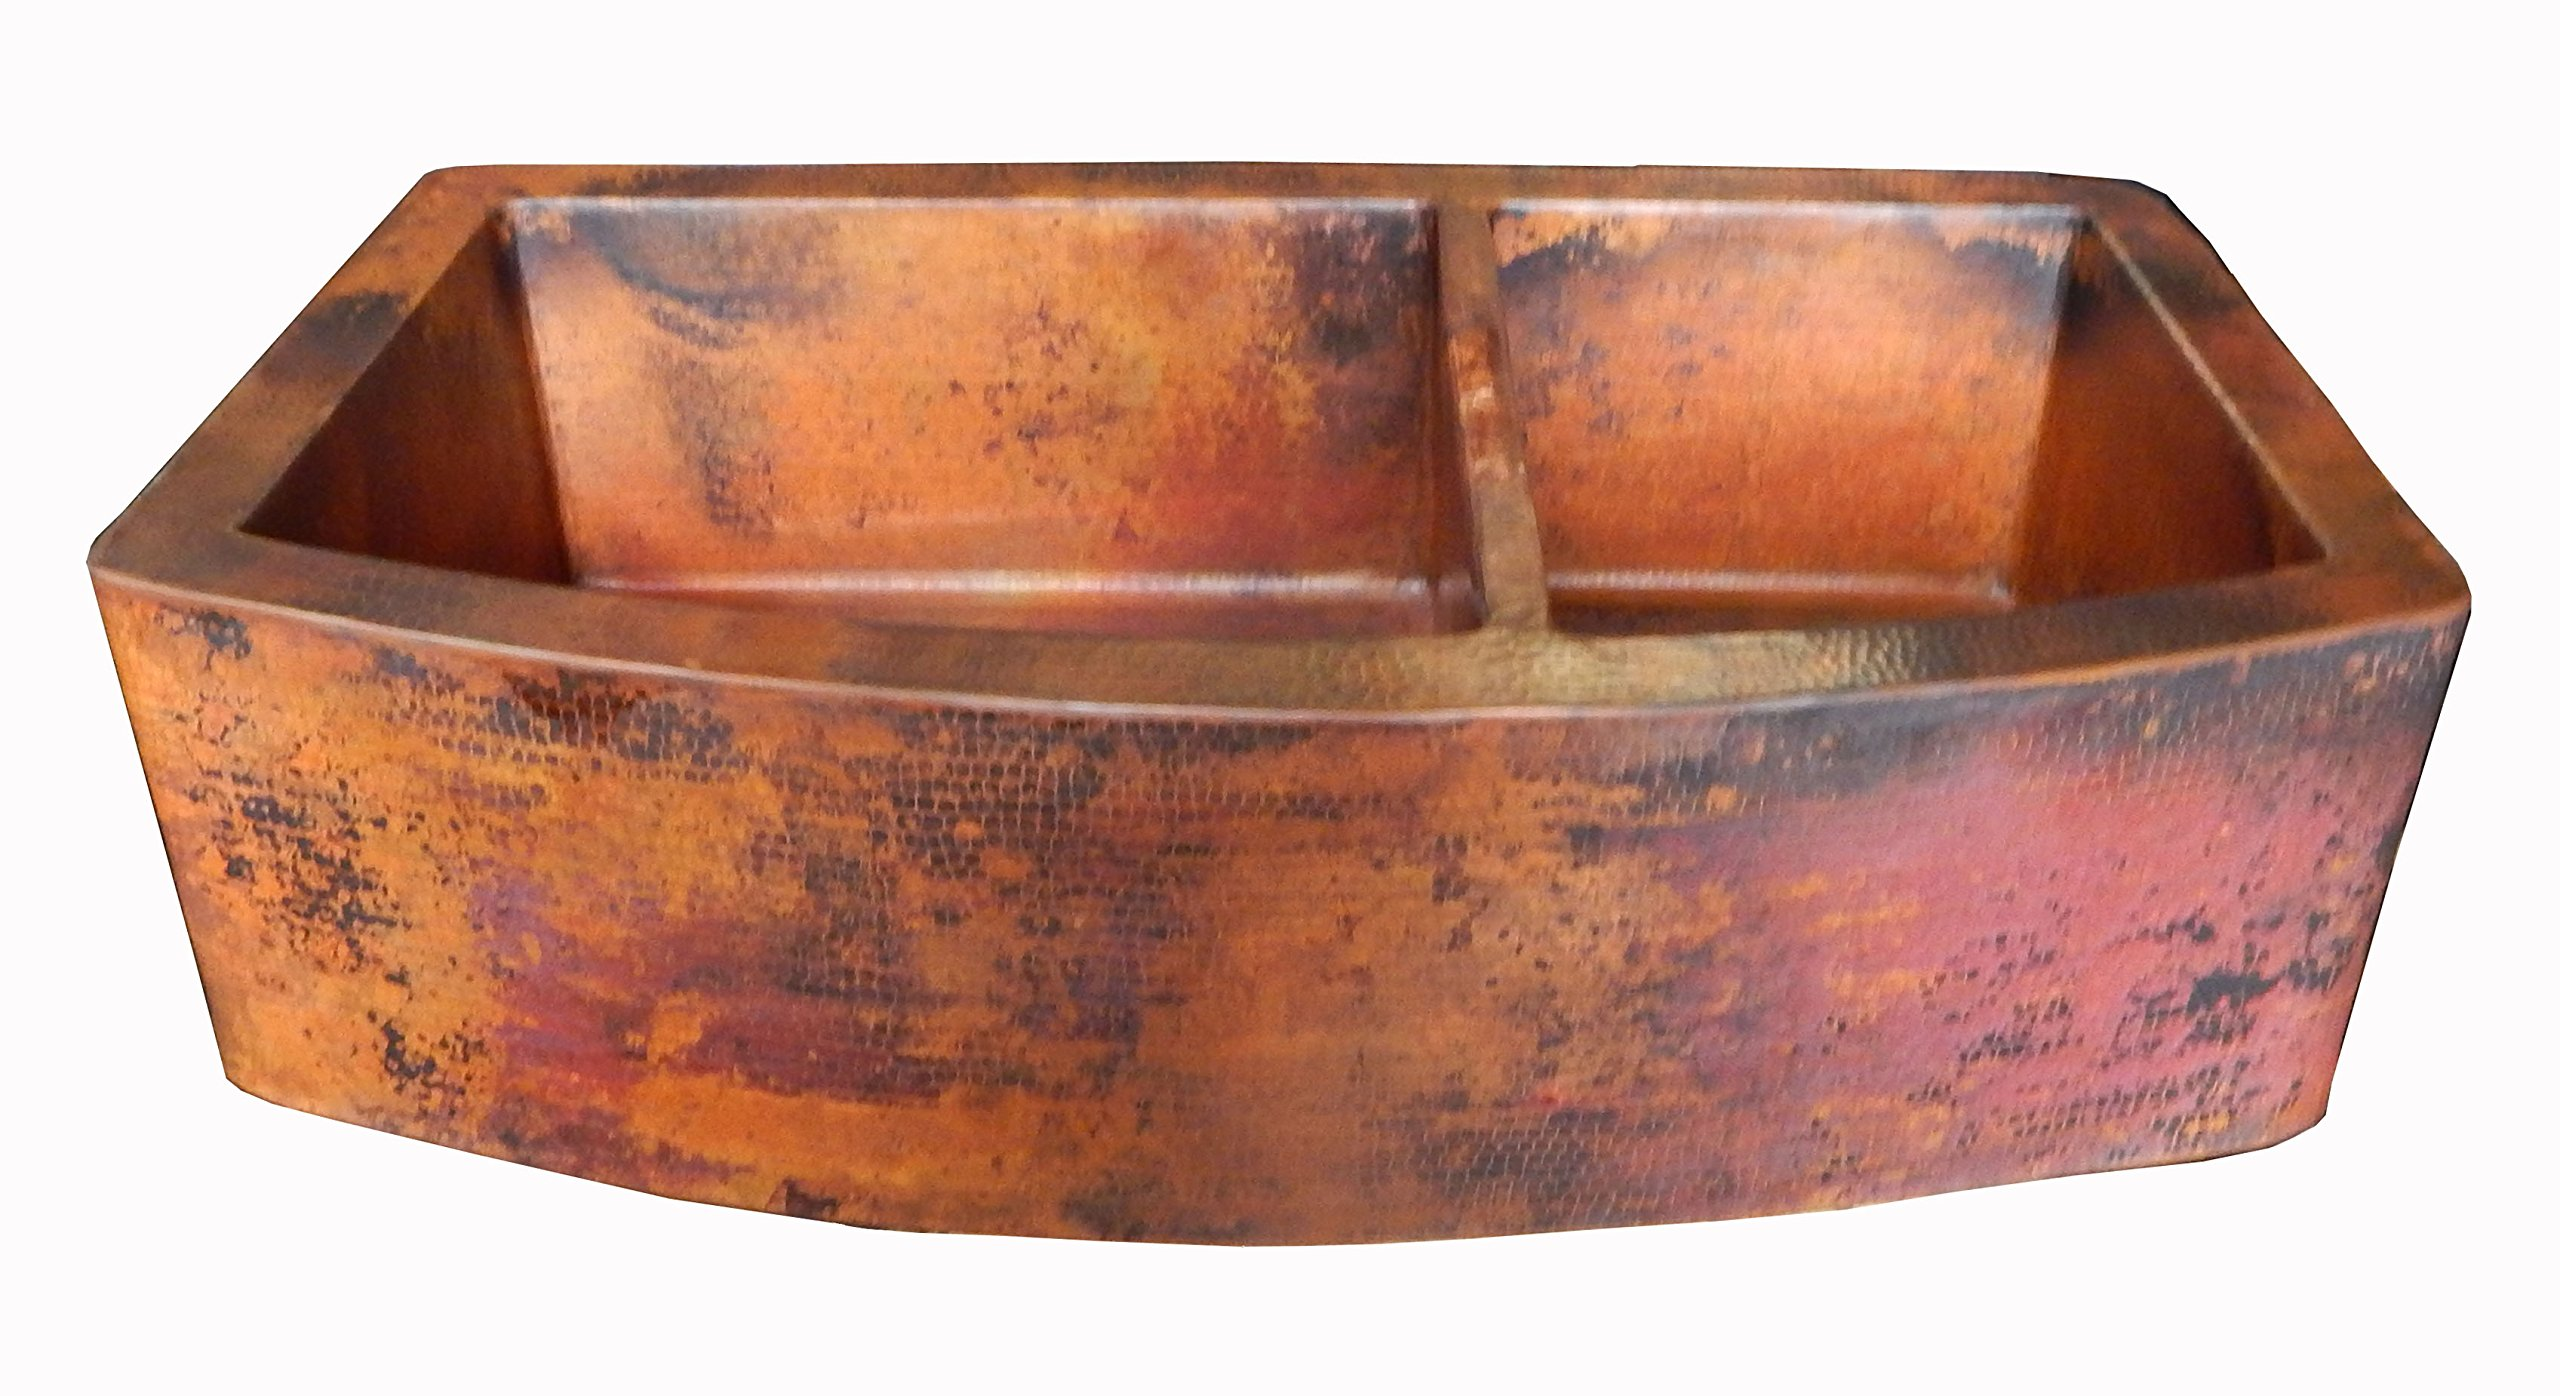 Rounded Apron Front Farmhouse Kitchen Double Bowl Mexican Copper Sink 60/40 33X22 Inches